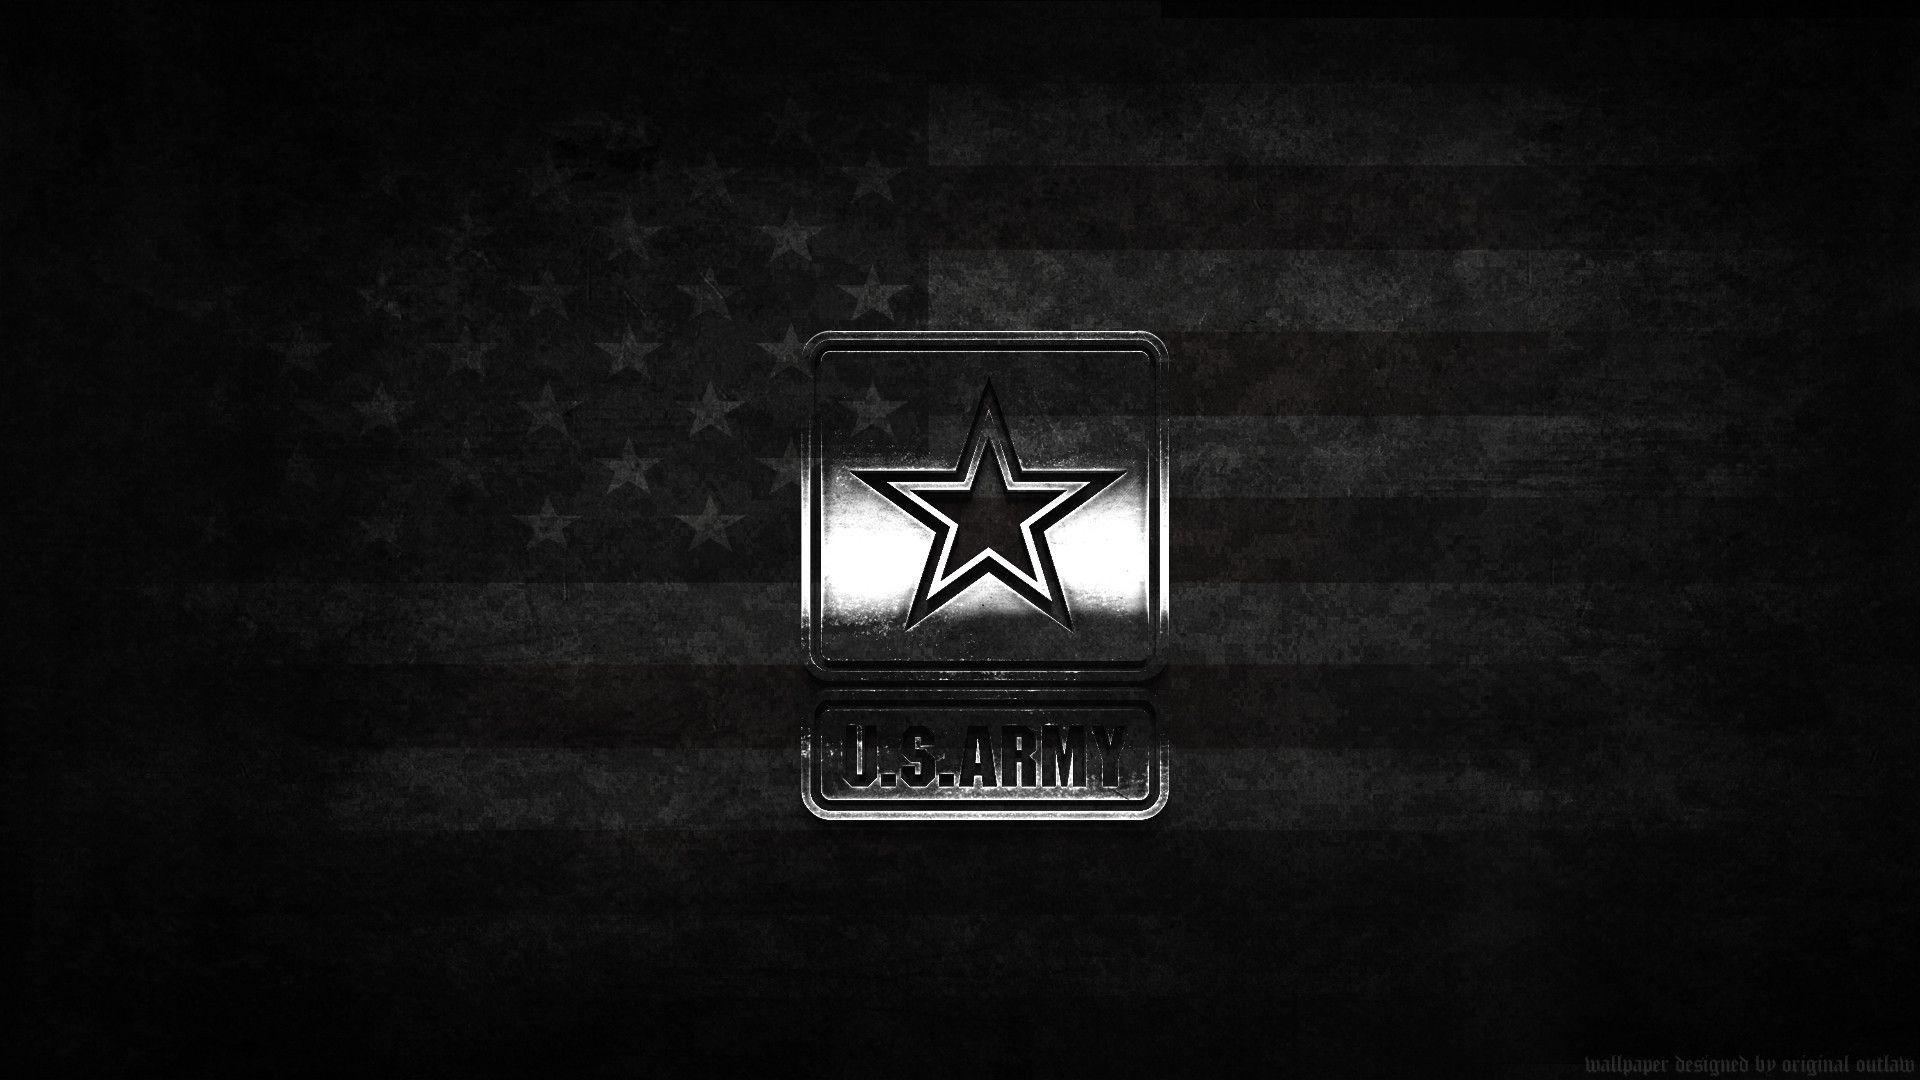 us a strong wallpapers - photo #28